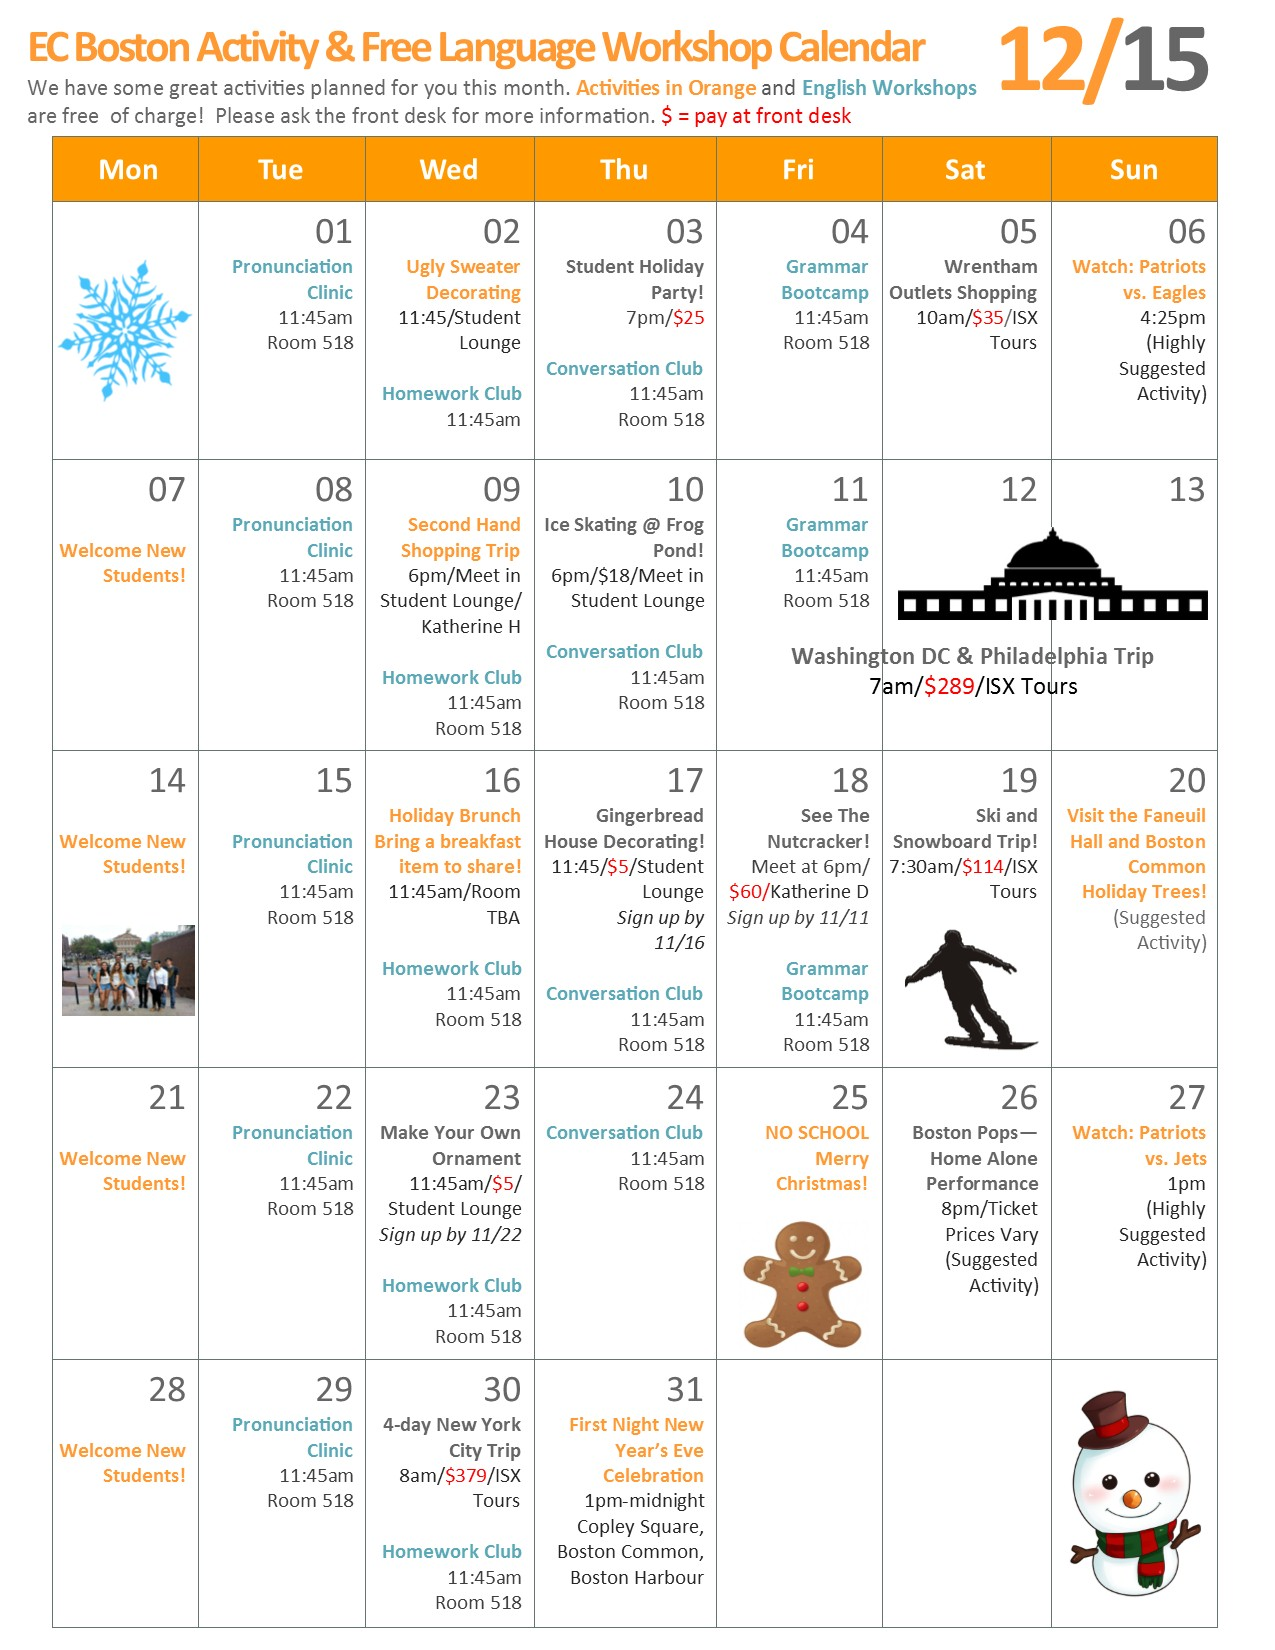 December 2015 Calendar - In Progress